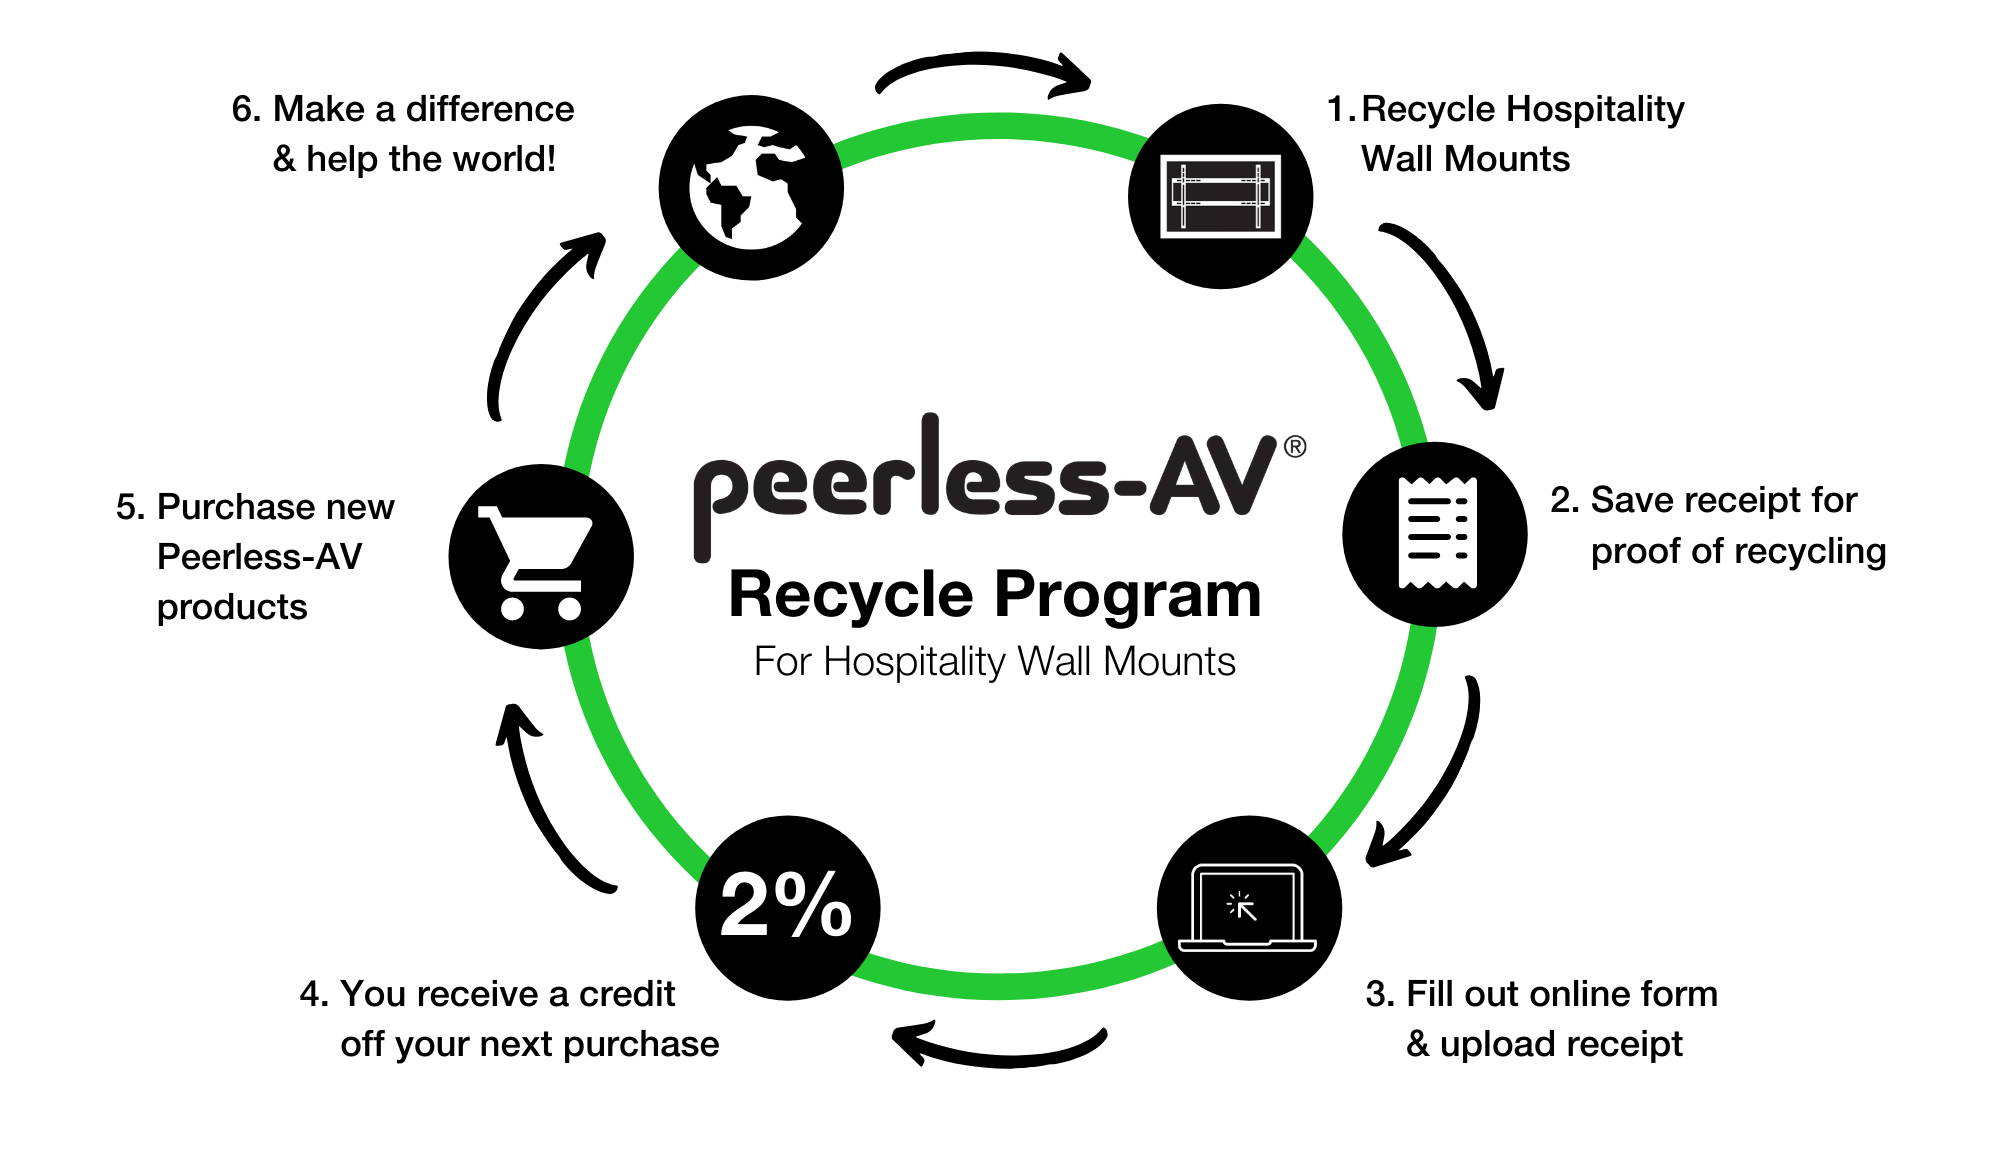 Peerless-AV Recycle Program for Hospitality Wall Mounts